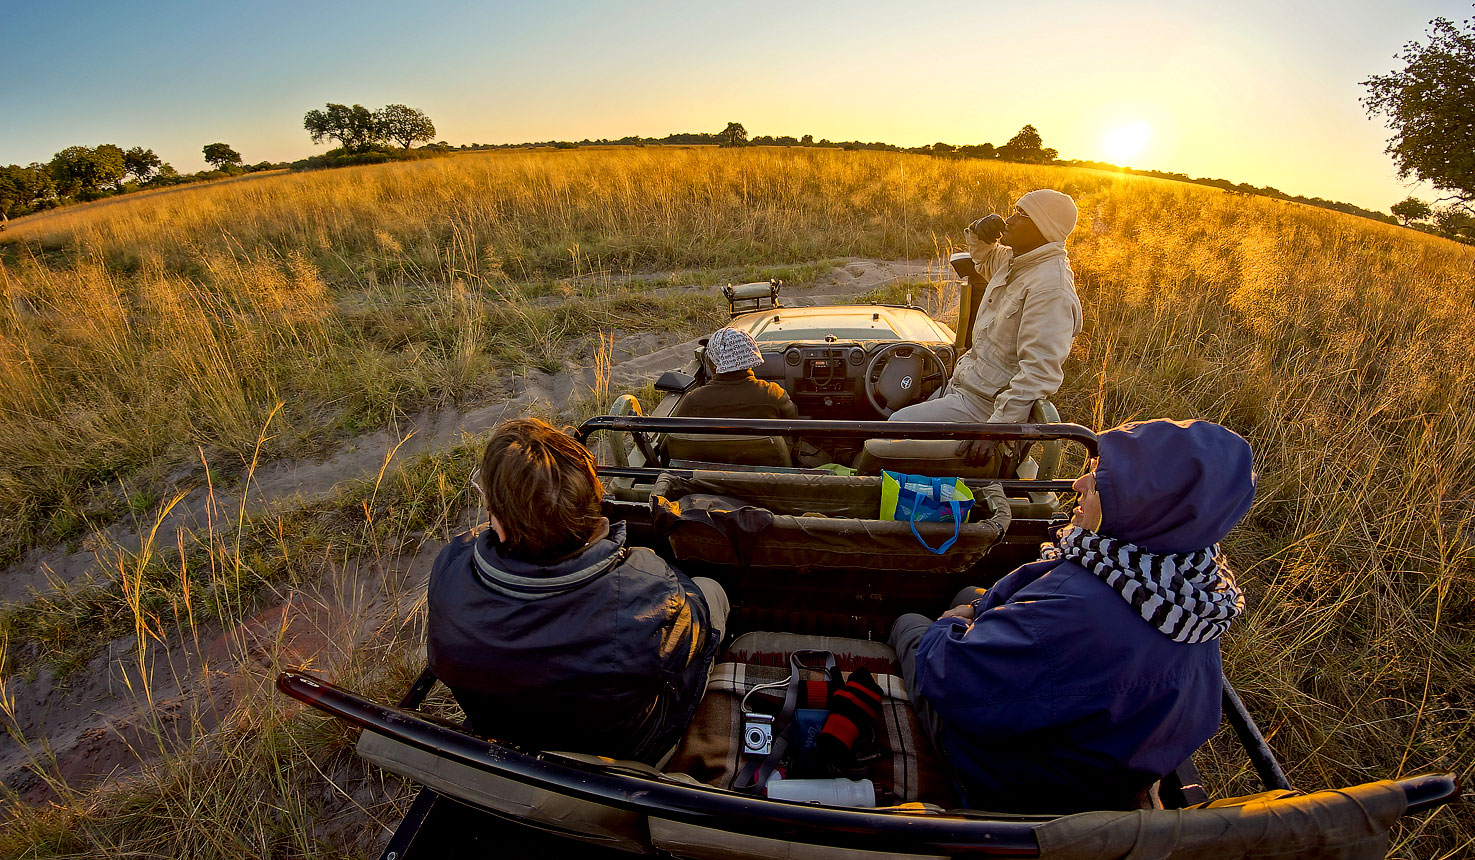 Safari to Vehicle Safari with Africa Travel Resource